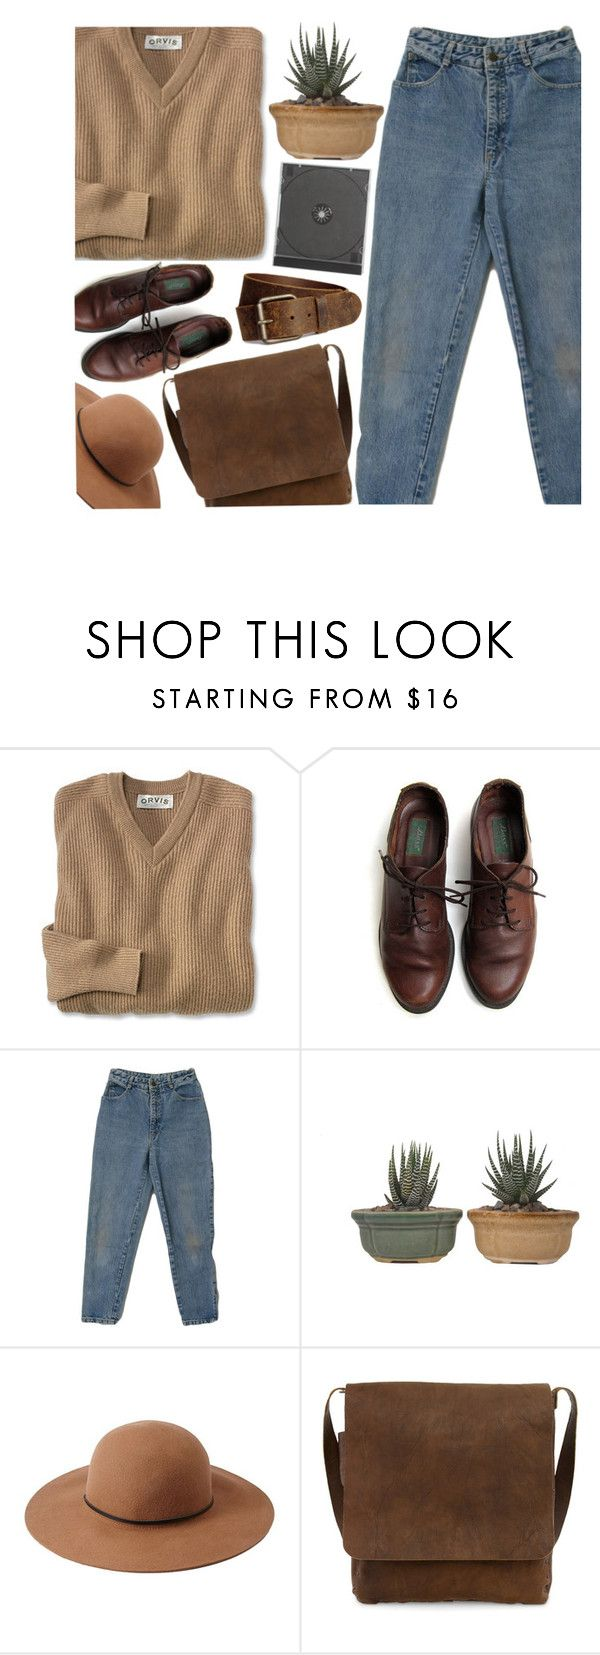 """""""WHITE HORSE AND A CARRIAGE"""" by heyaliens ❤ liked on Polyvore featuring Forever 21 and cydwoq"""